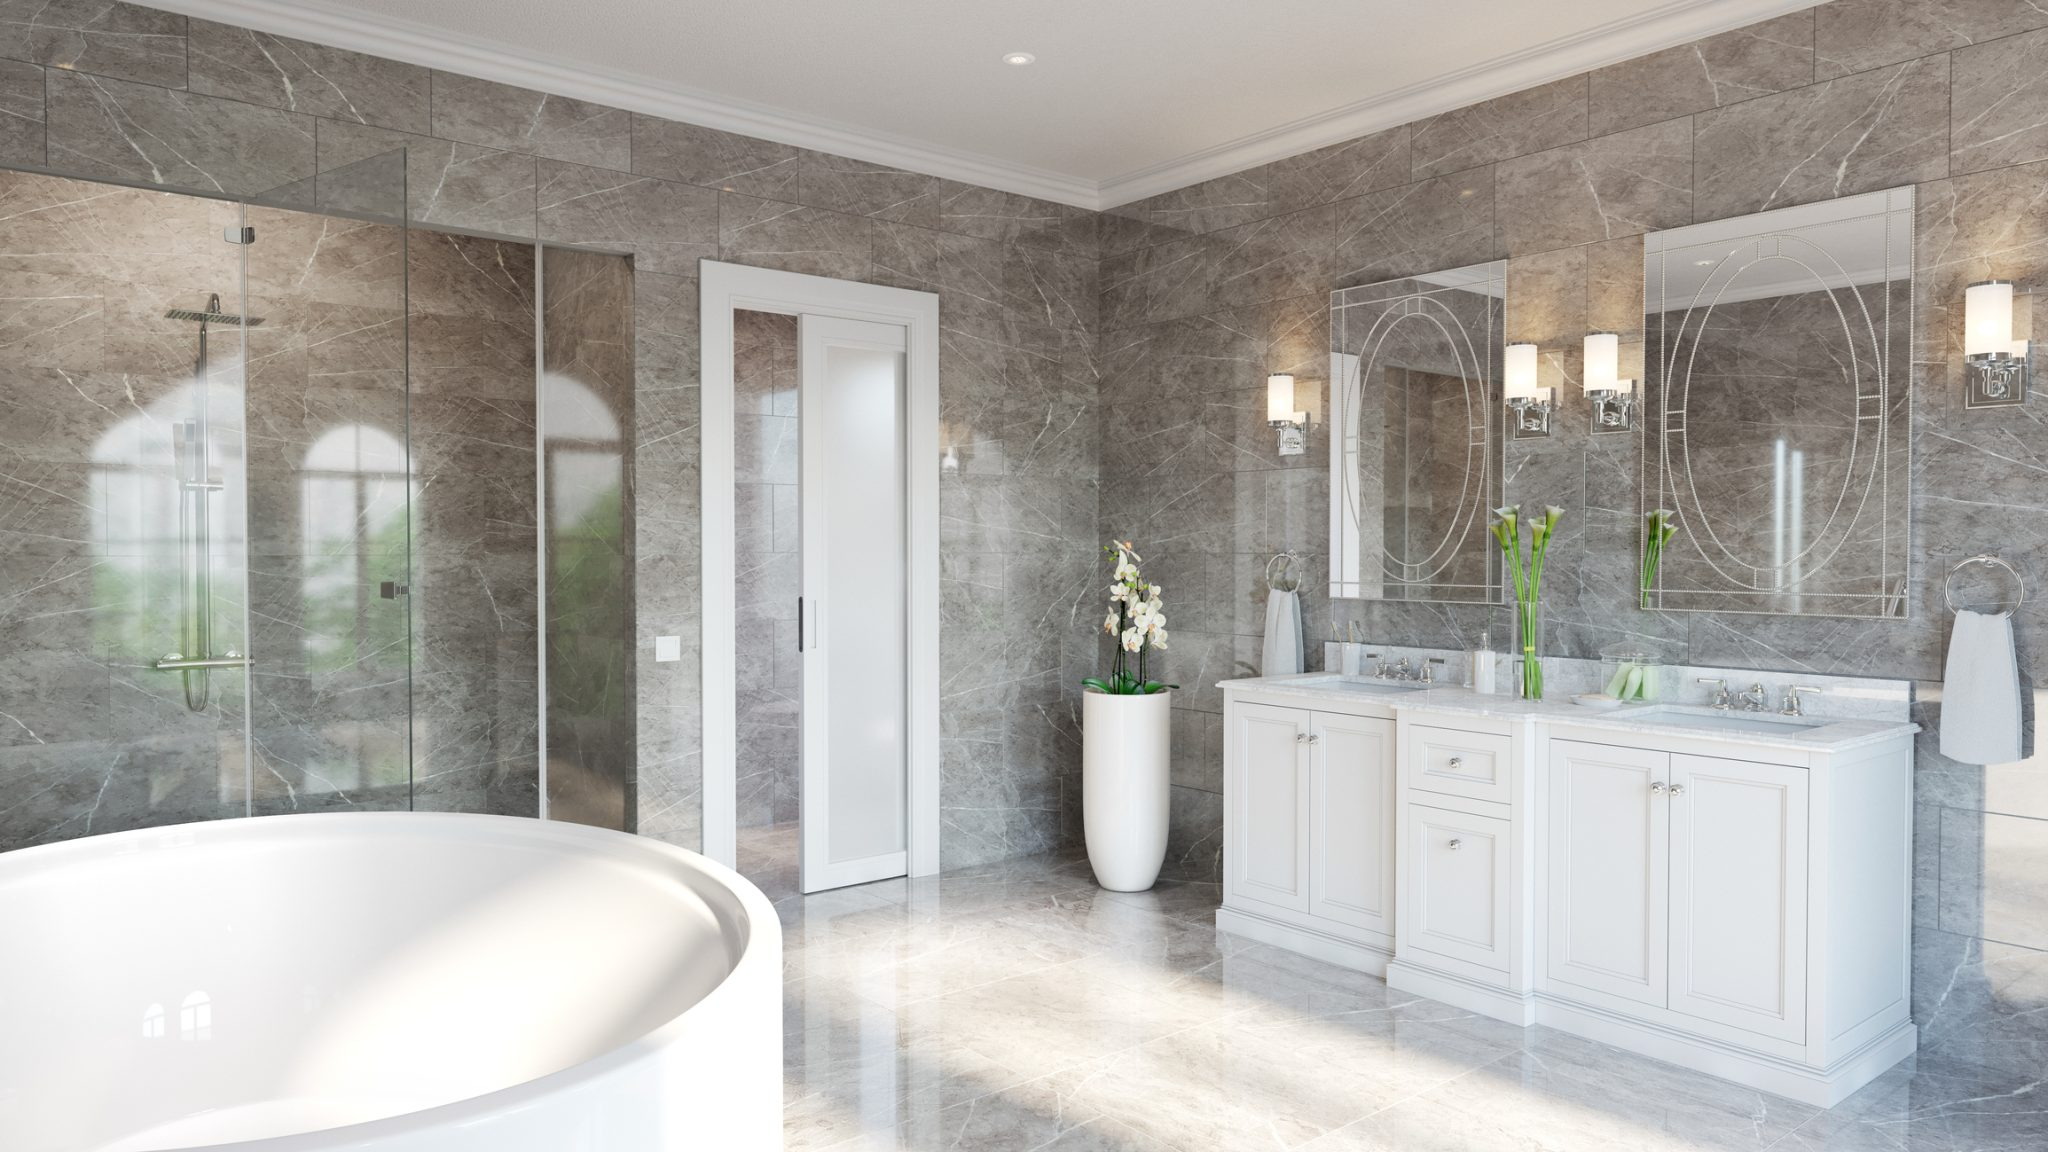 Luxury Ensuite for Master Bedroom - City House Country Home